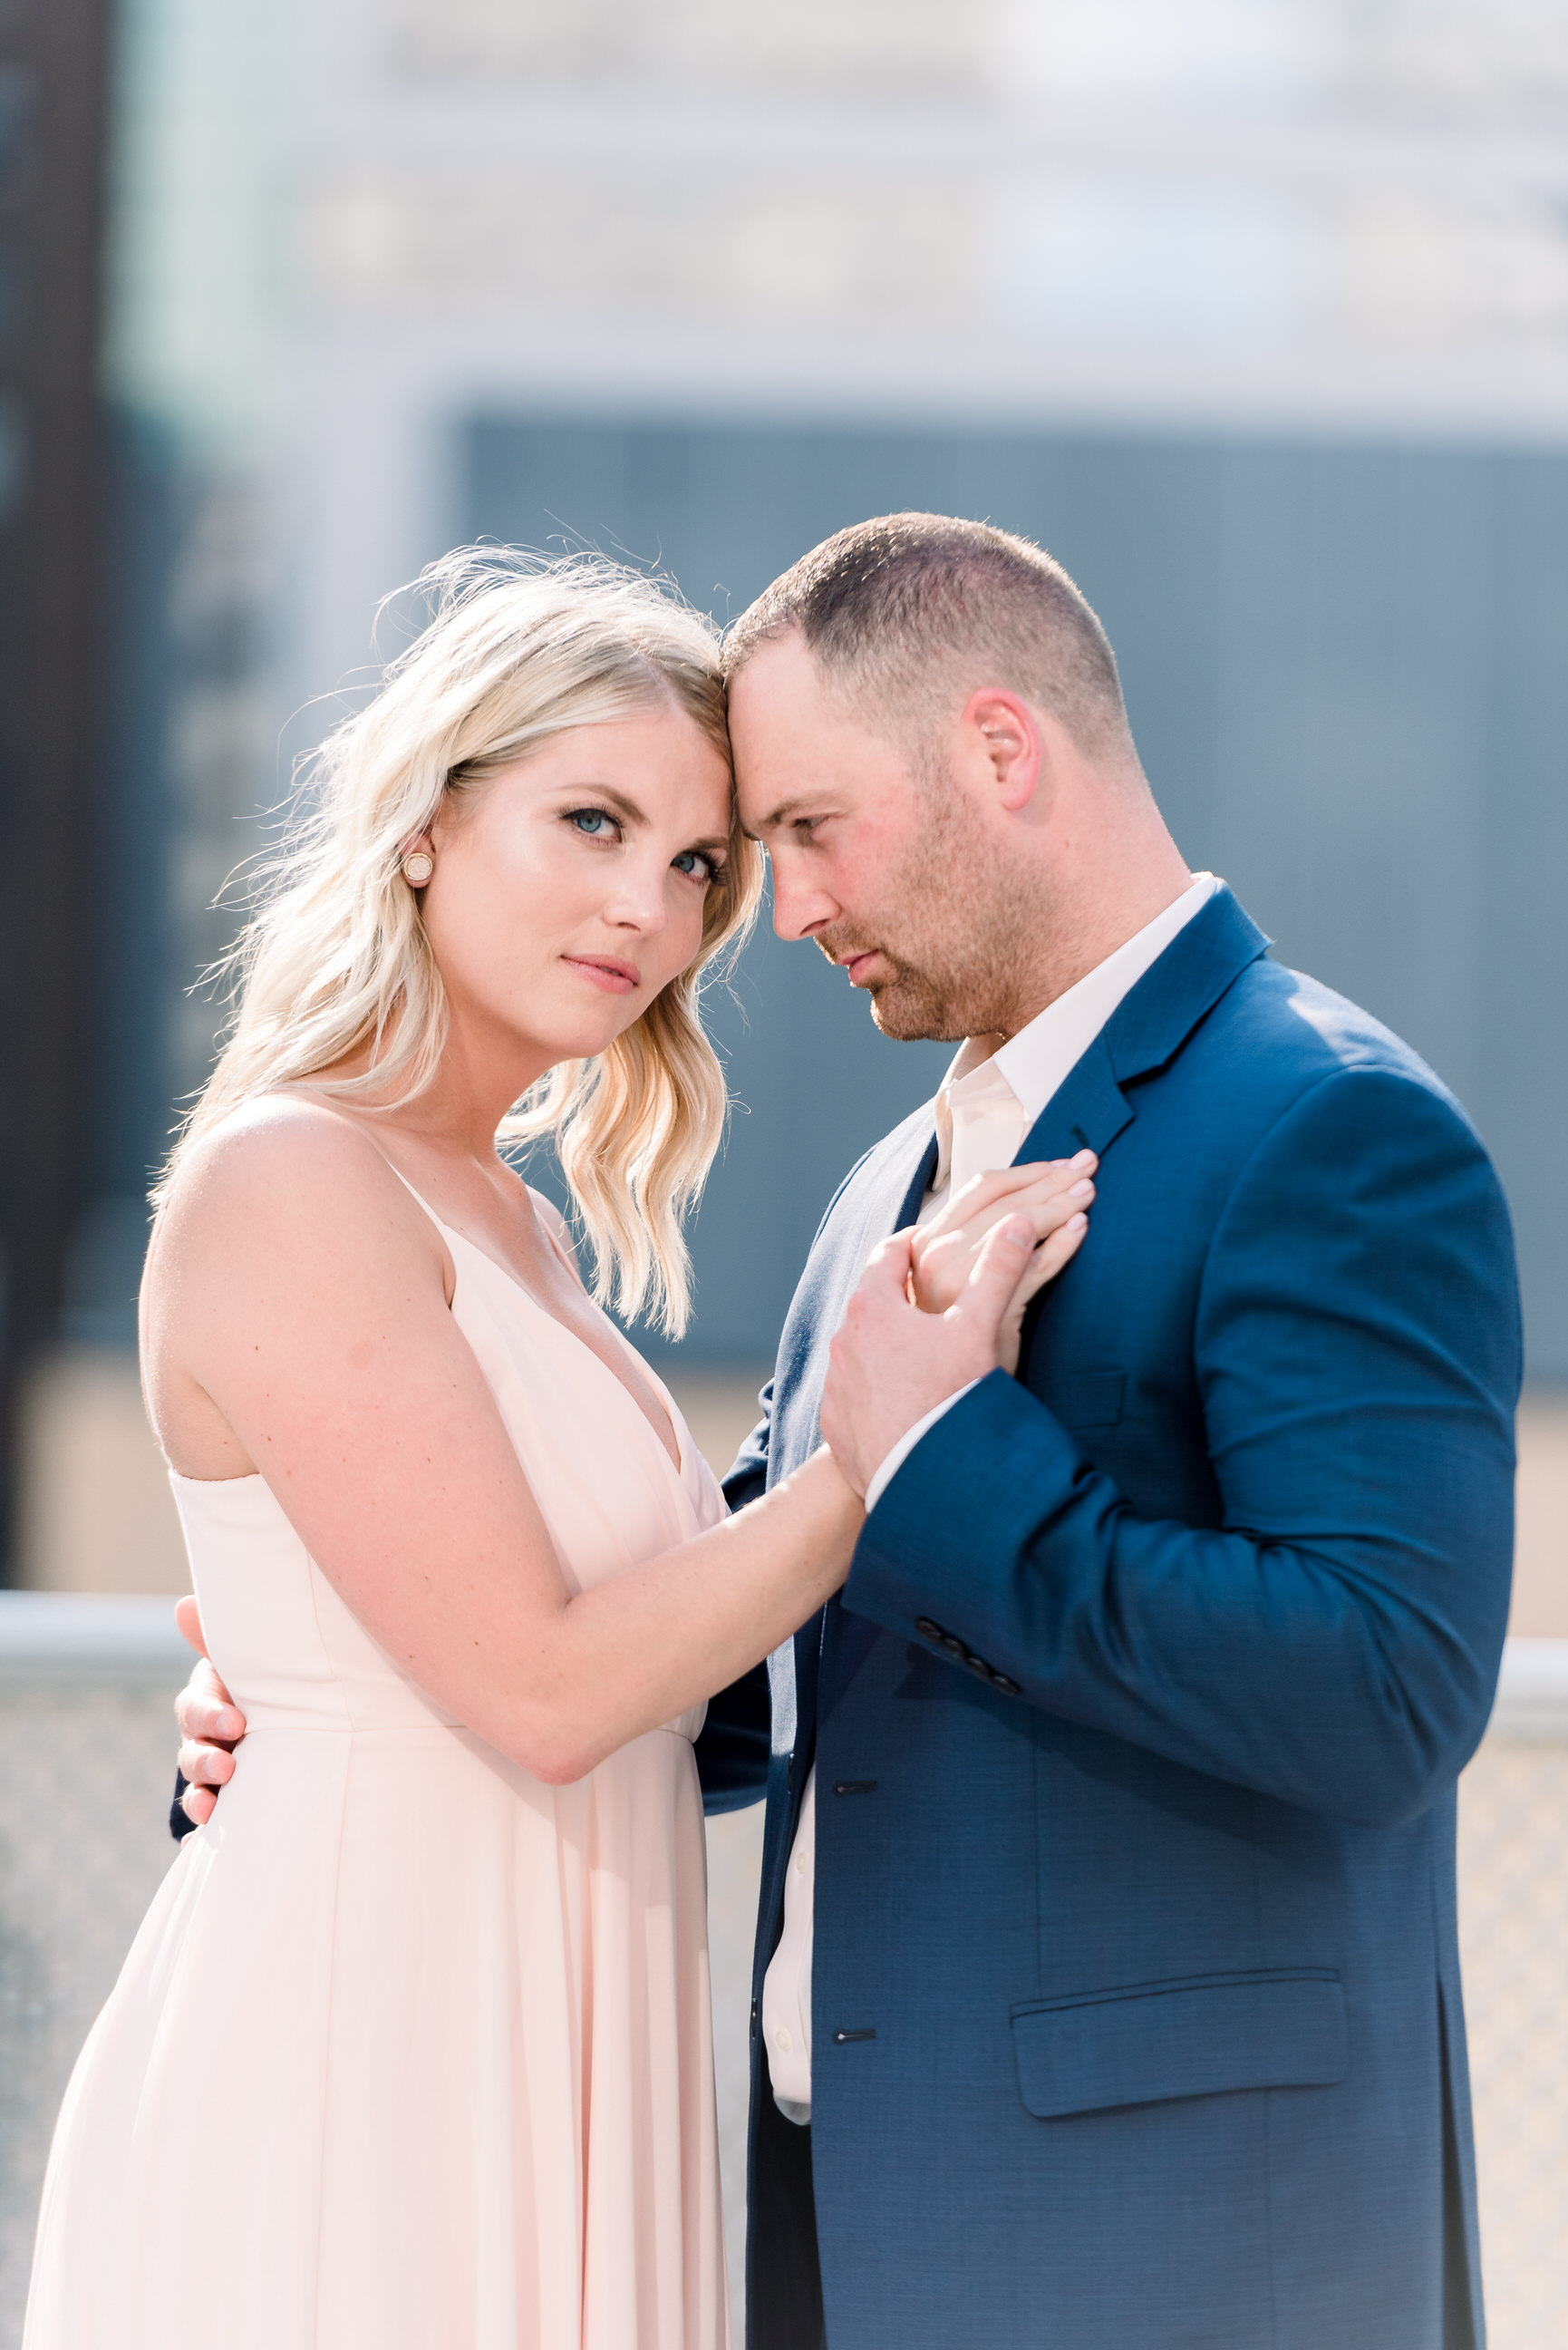 downtown-pittsburgh-rooftop-engagement-session-ashley-reed-photography0.jpg